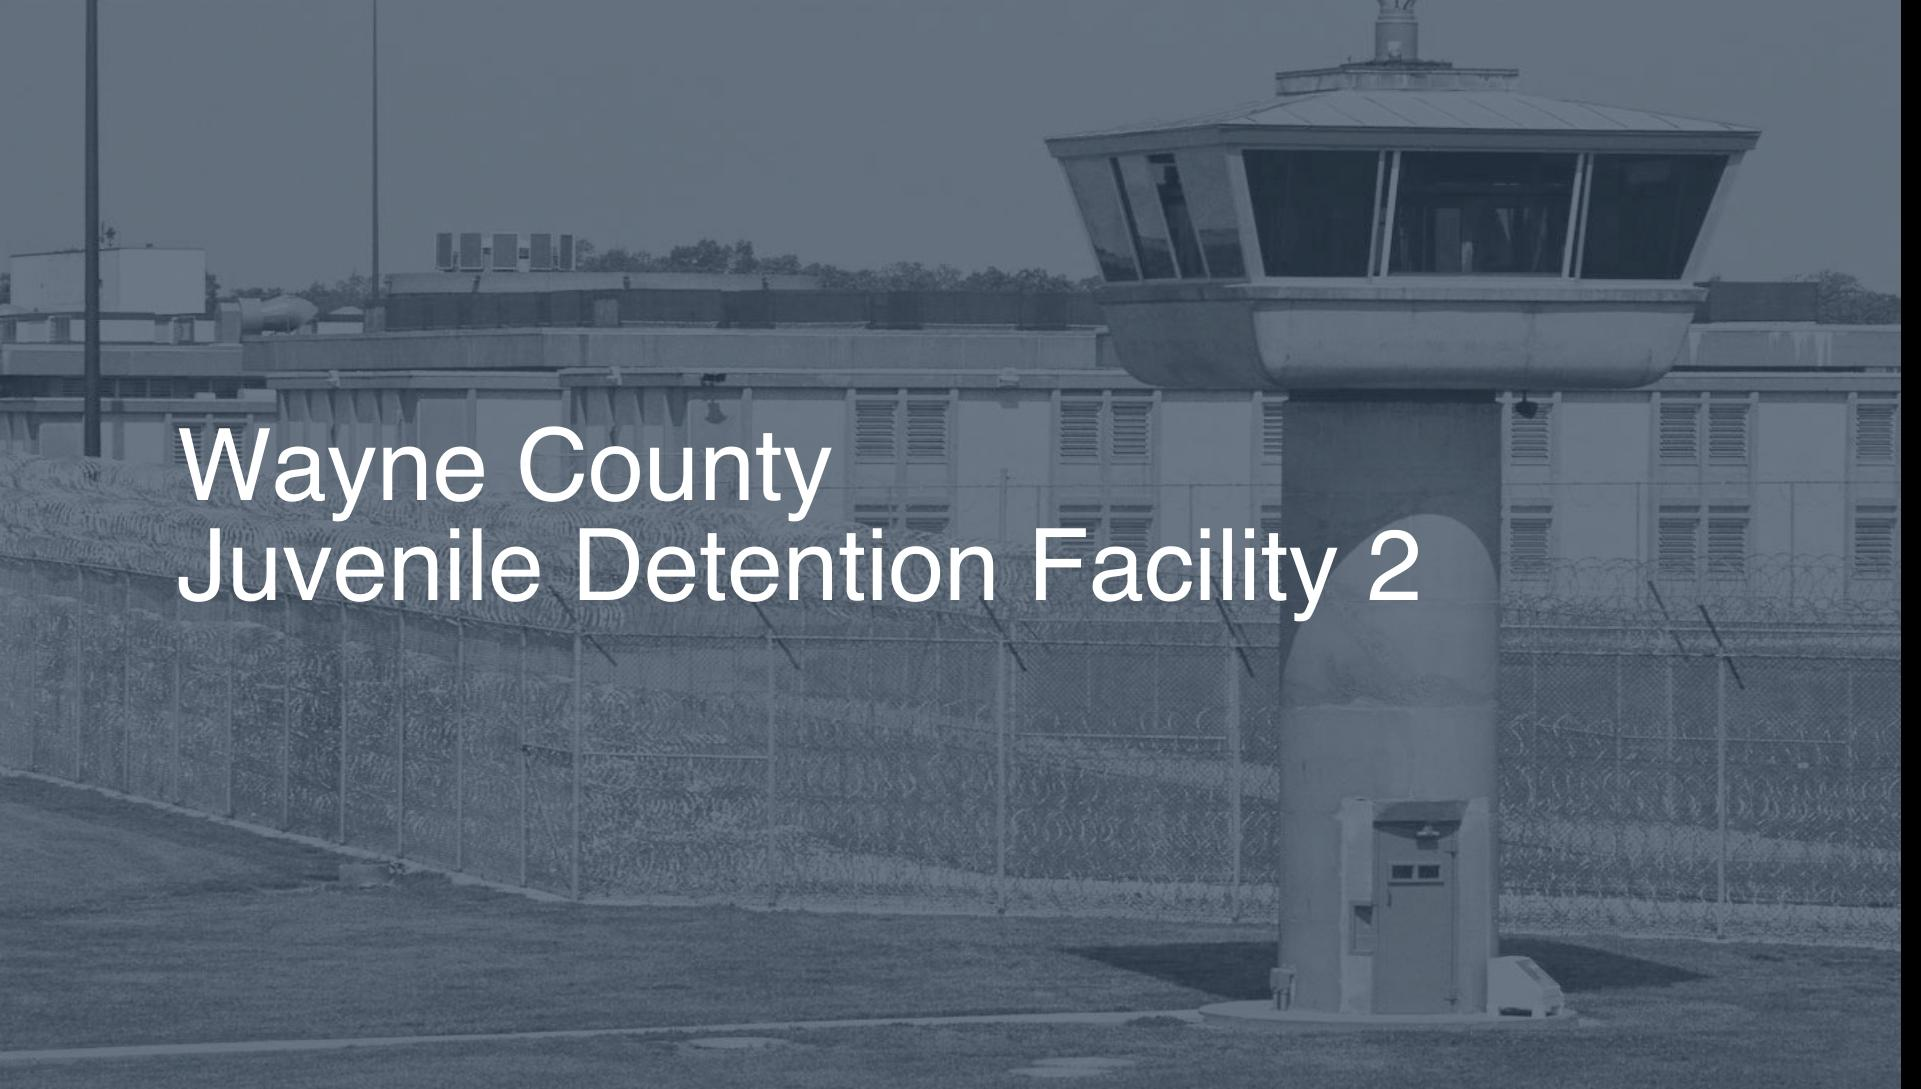 Wayne County Juvenile Detention Facility | Pigeonly - Inmate